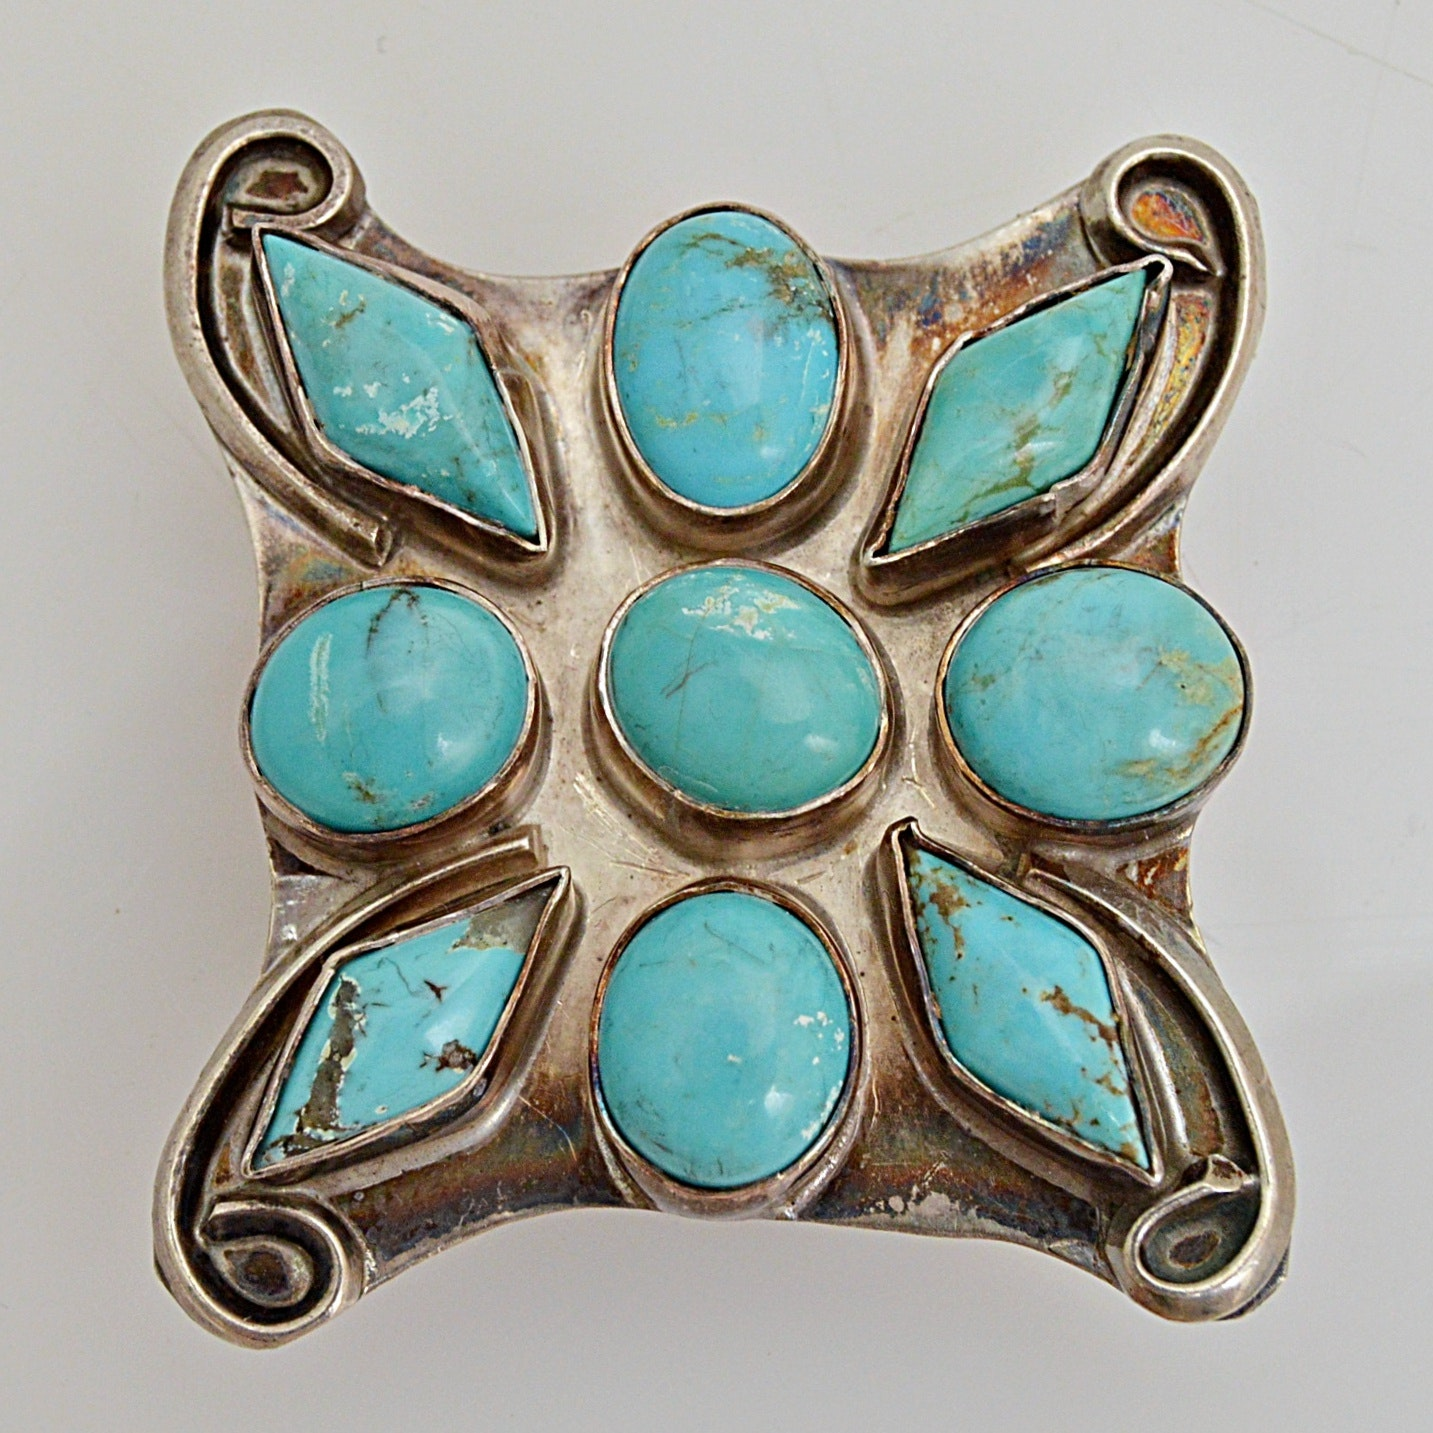 Vintage Sterling Silver and Turquoise Converter Brooch